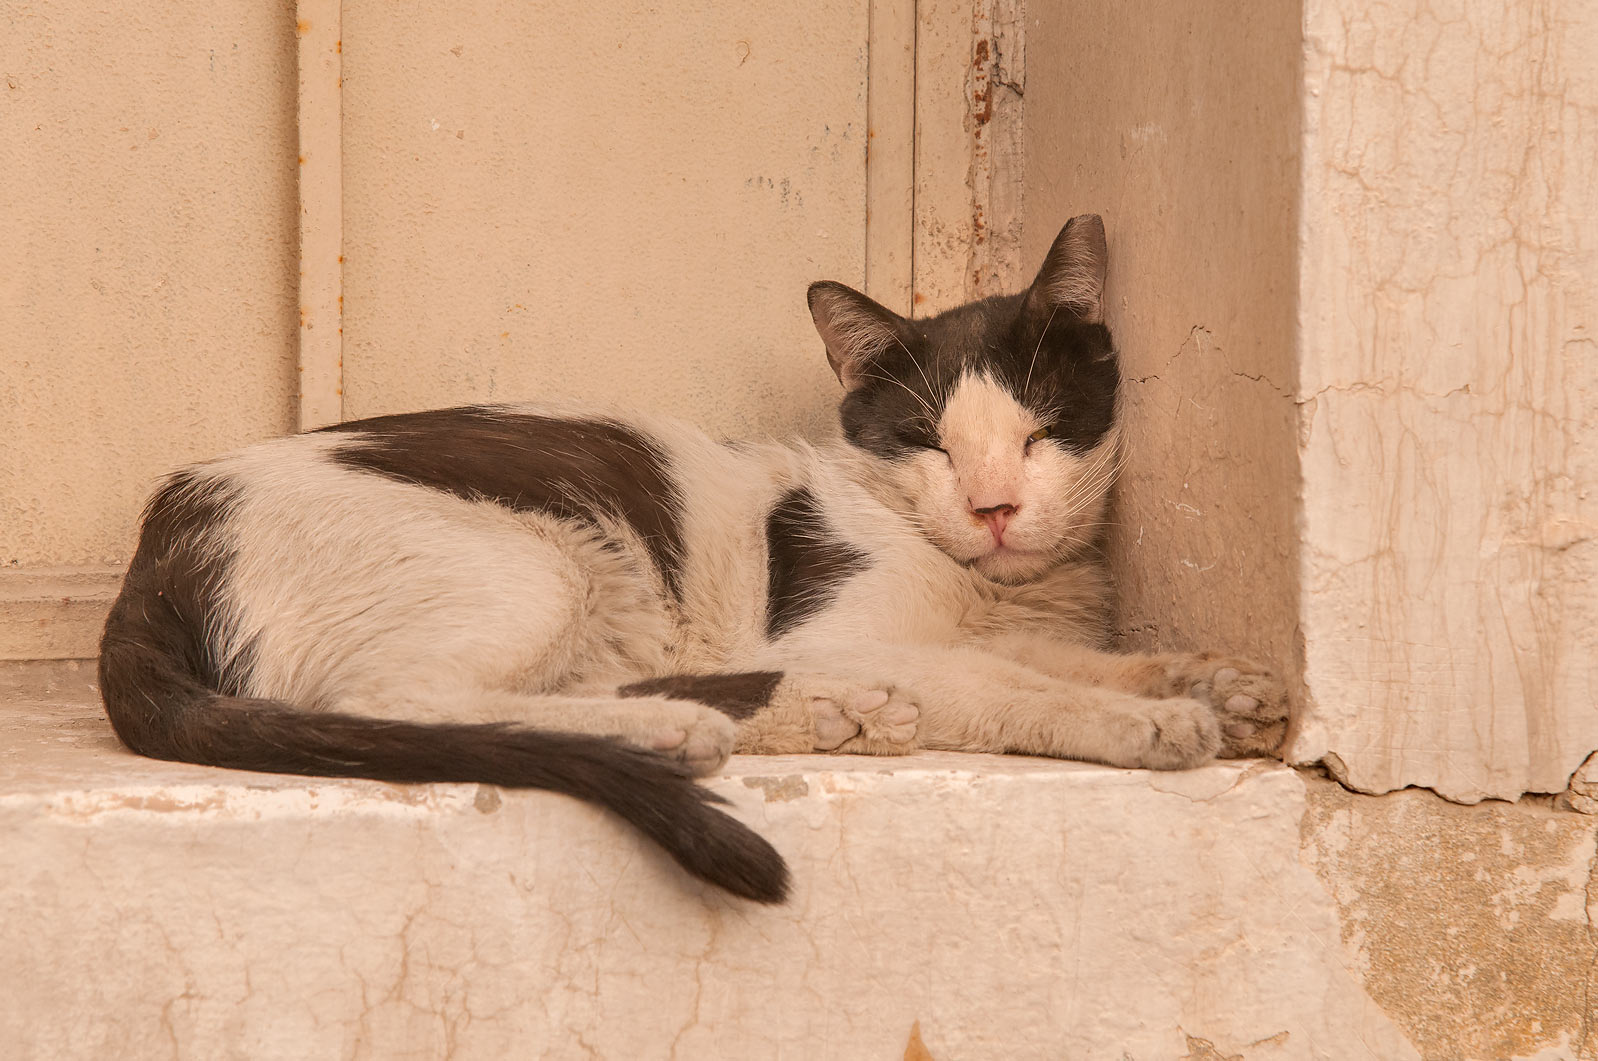 Cat sleeping at Al Jassasiya St., Musheirib area. Doha, Qatar